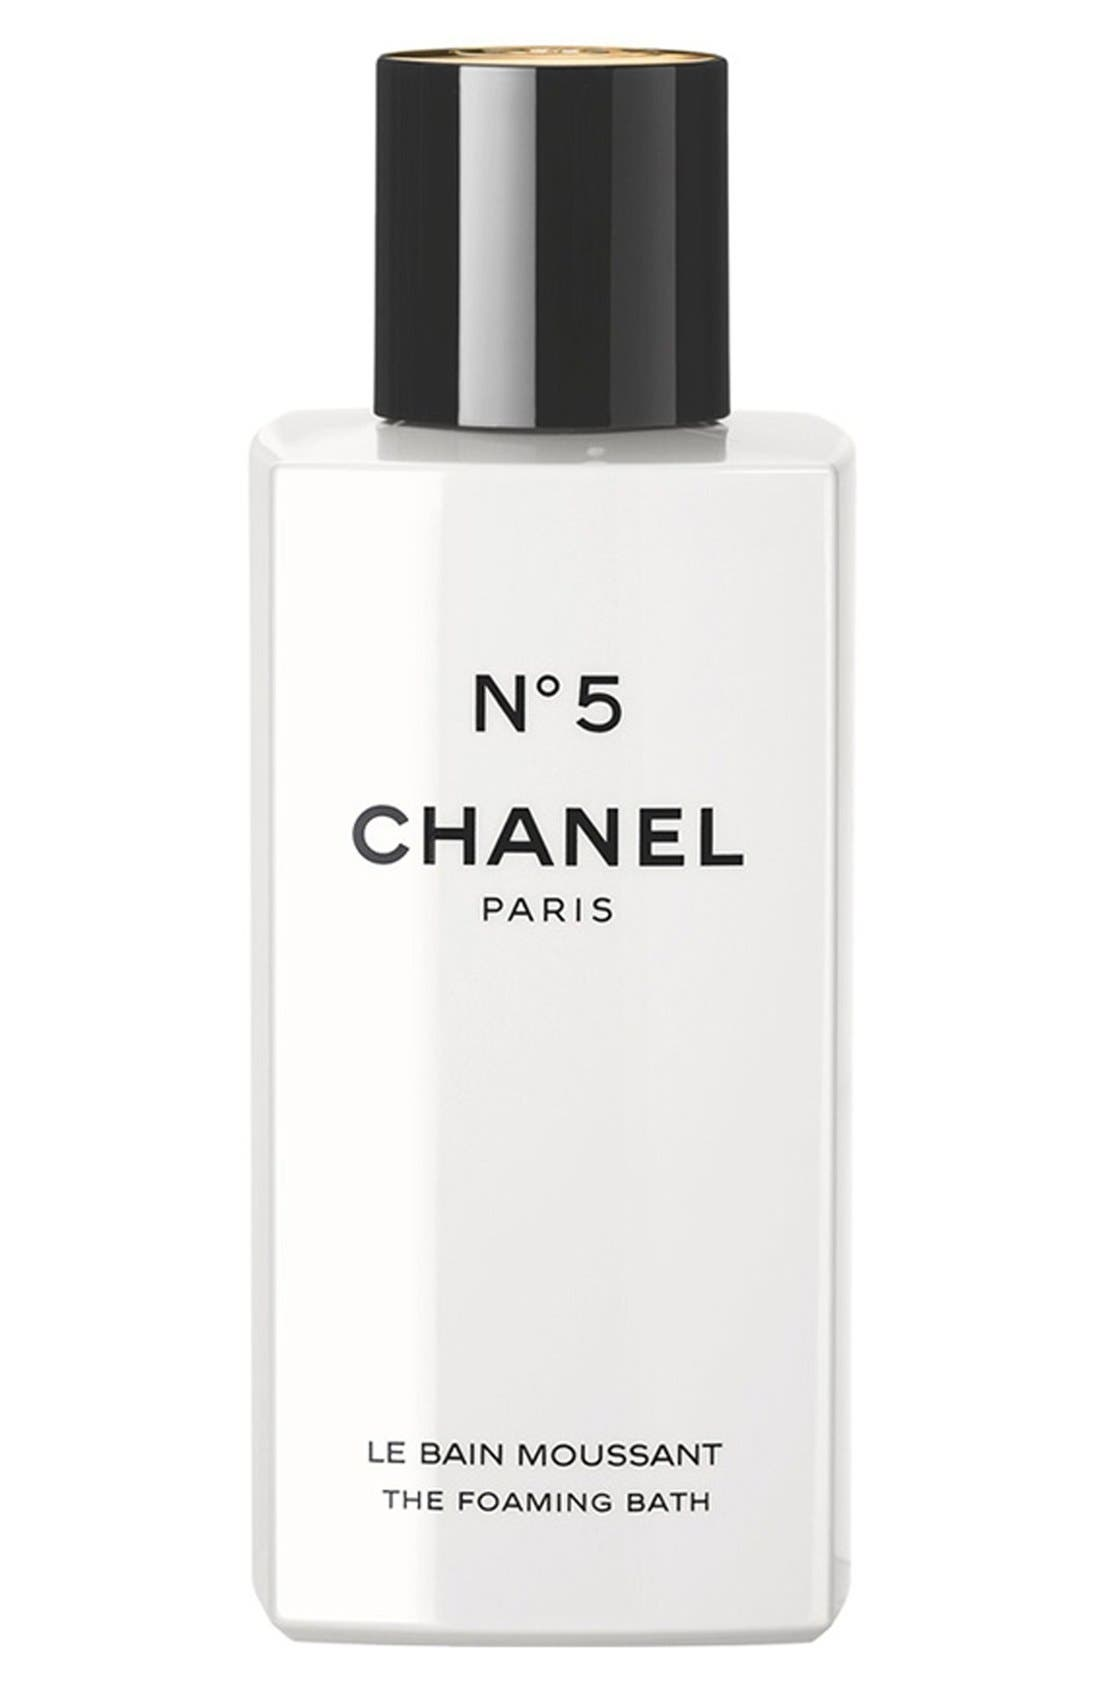 CHANEL N°5 LE BAIN MOUSSANT THE FOAMING BATH